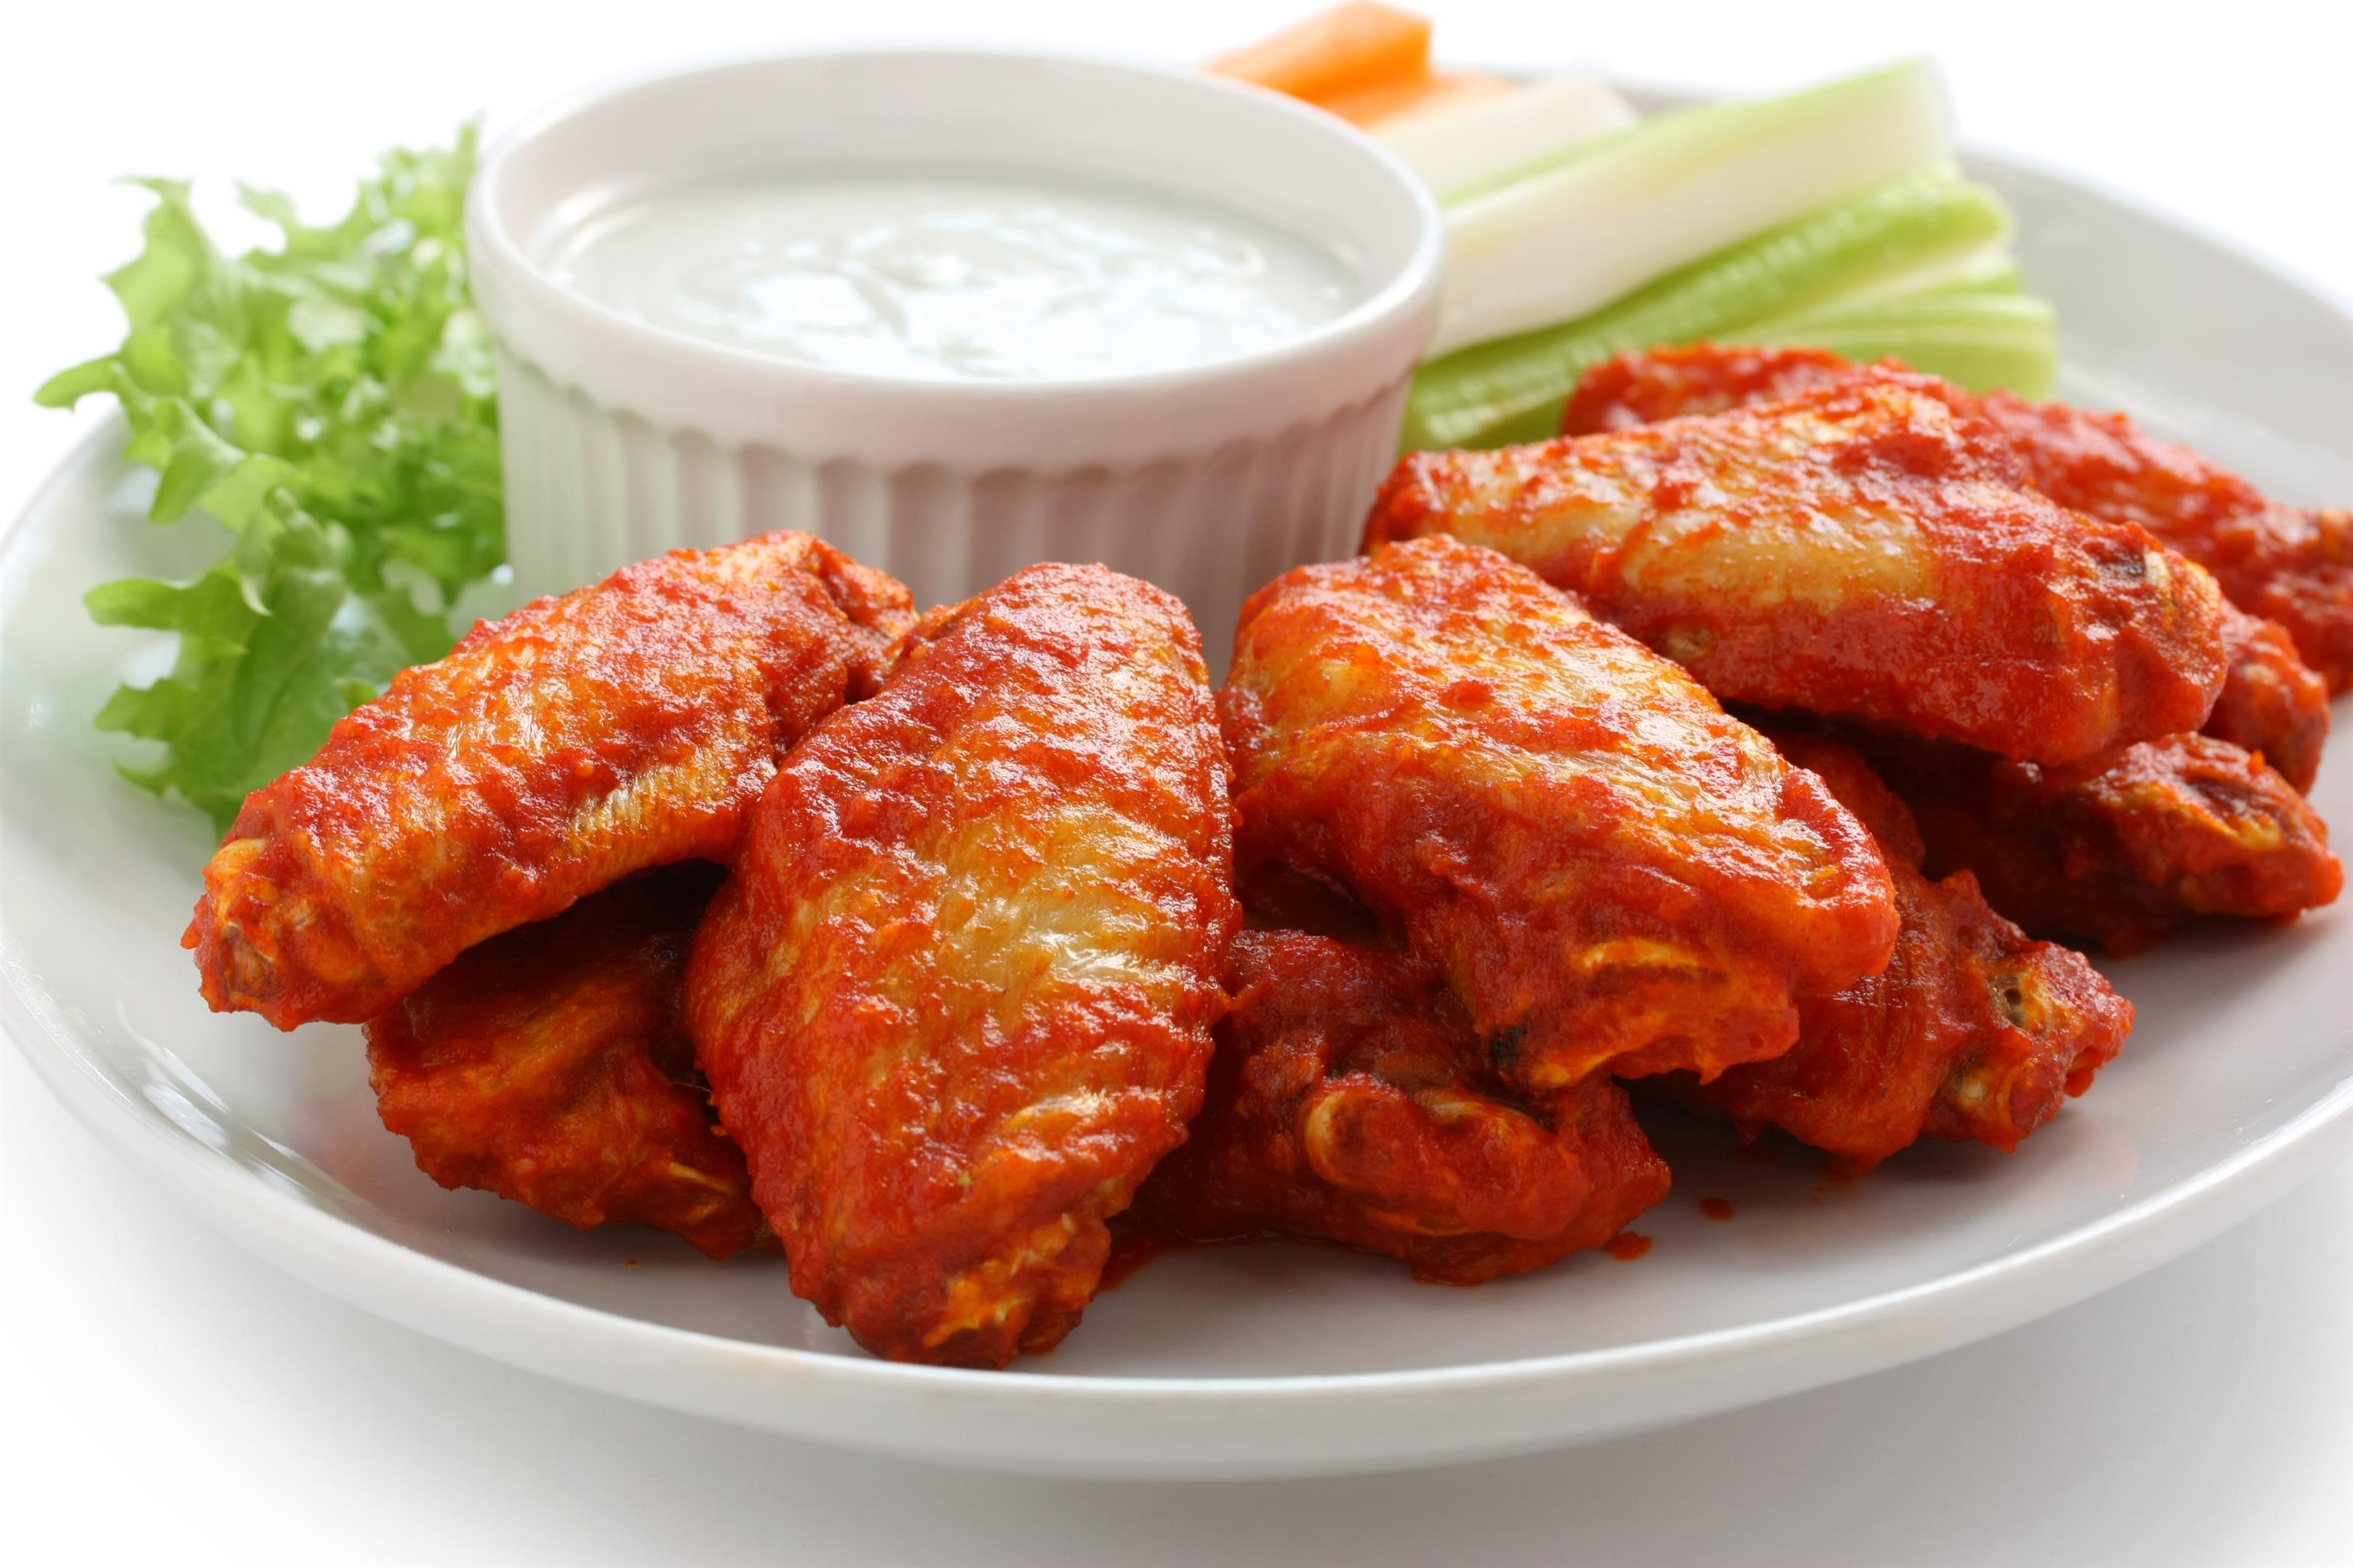 buffalo chicken wings on dish with celery, carrots, and ranch dressing in cup.